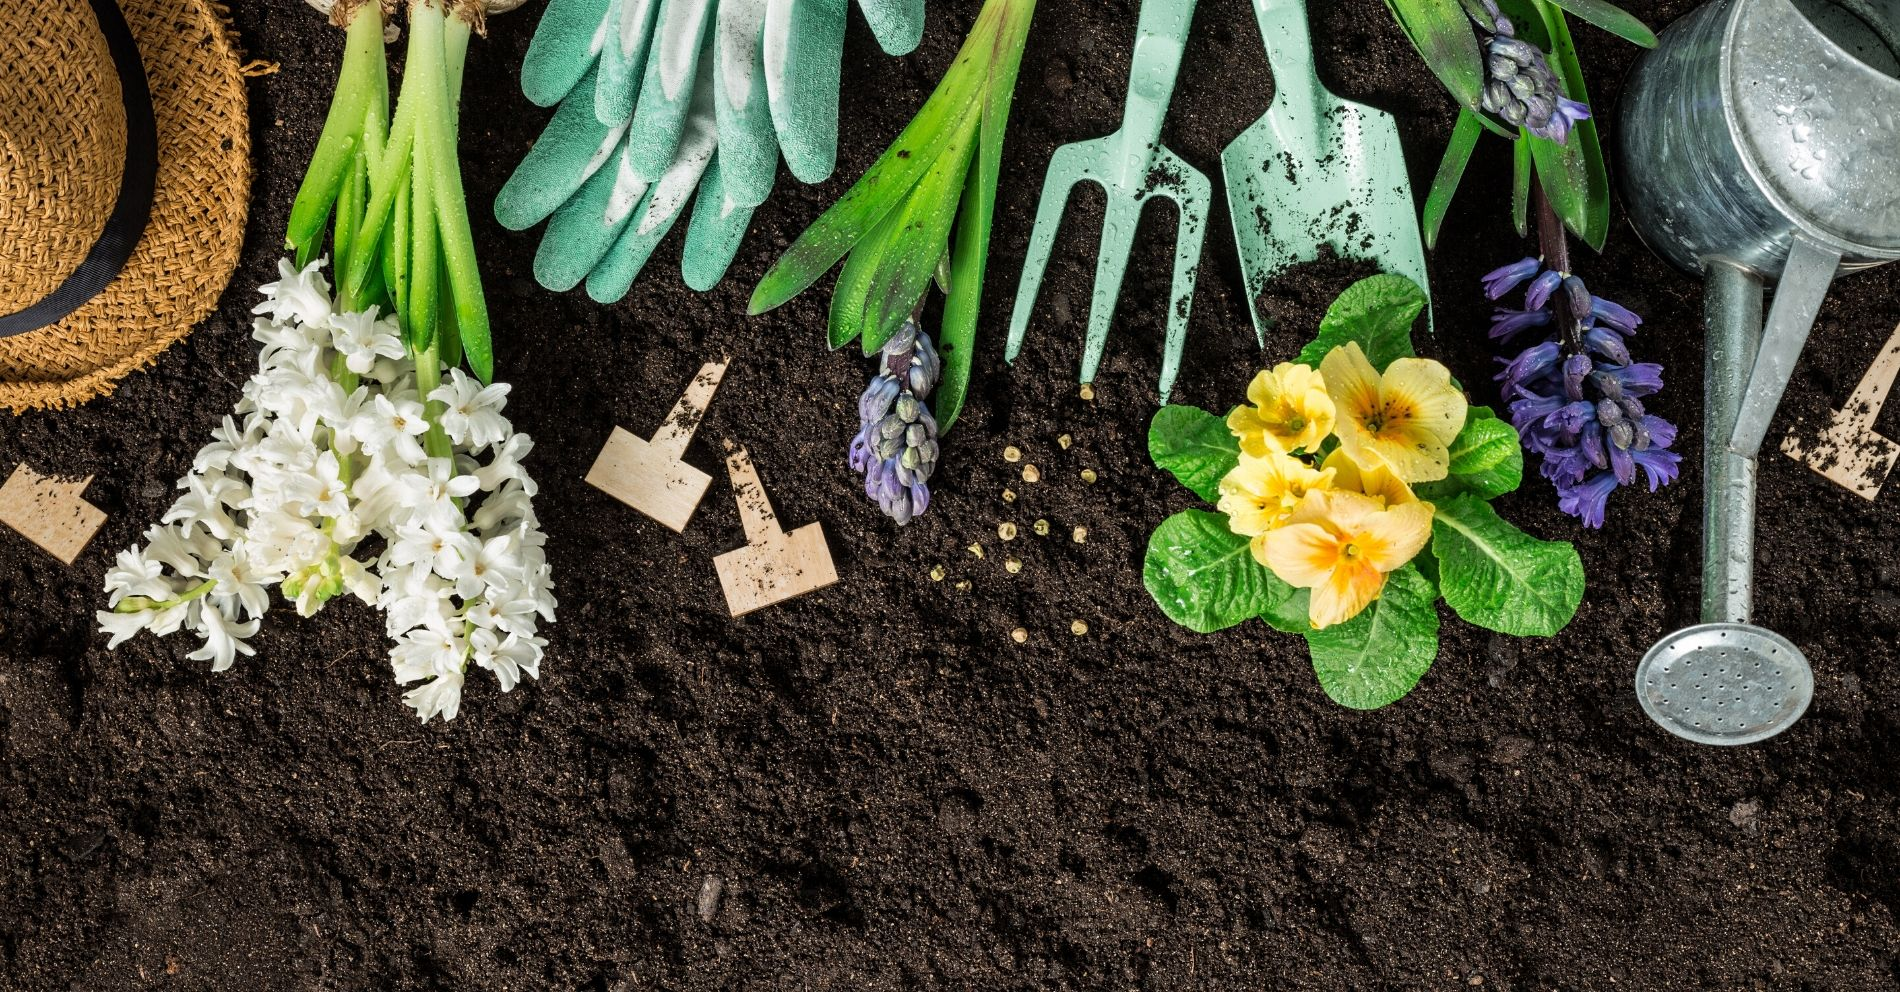 13 Essential Home Gardening Tools for Seniors